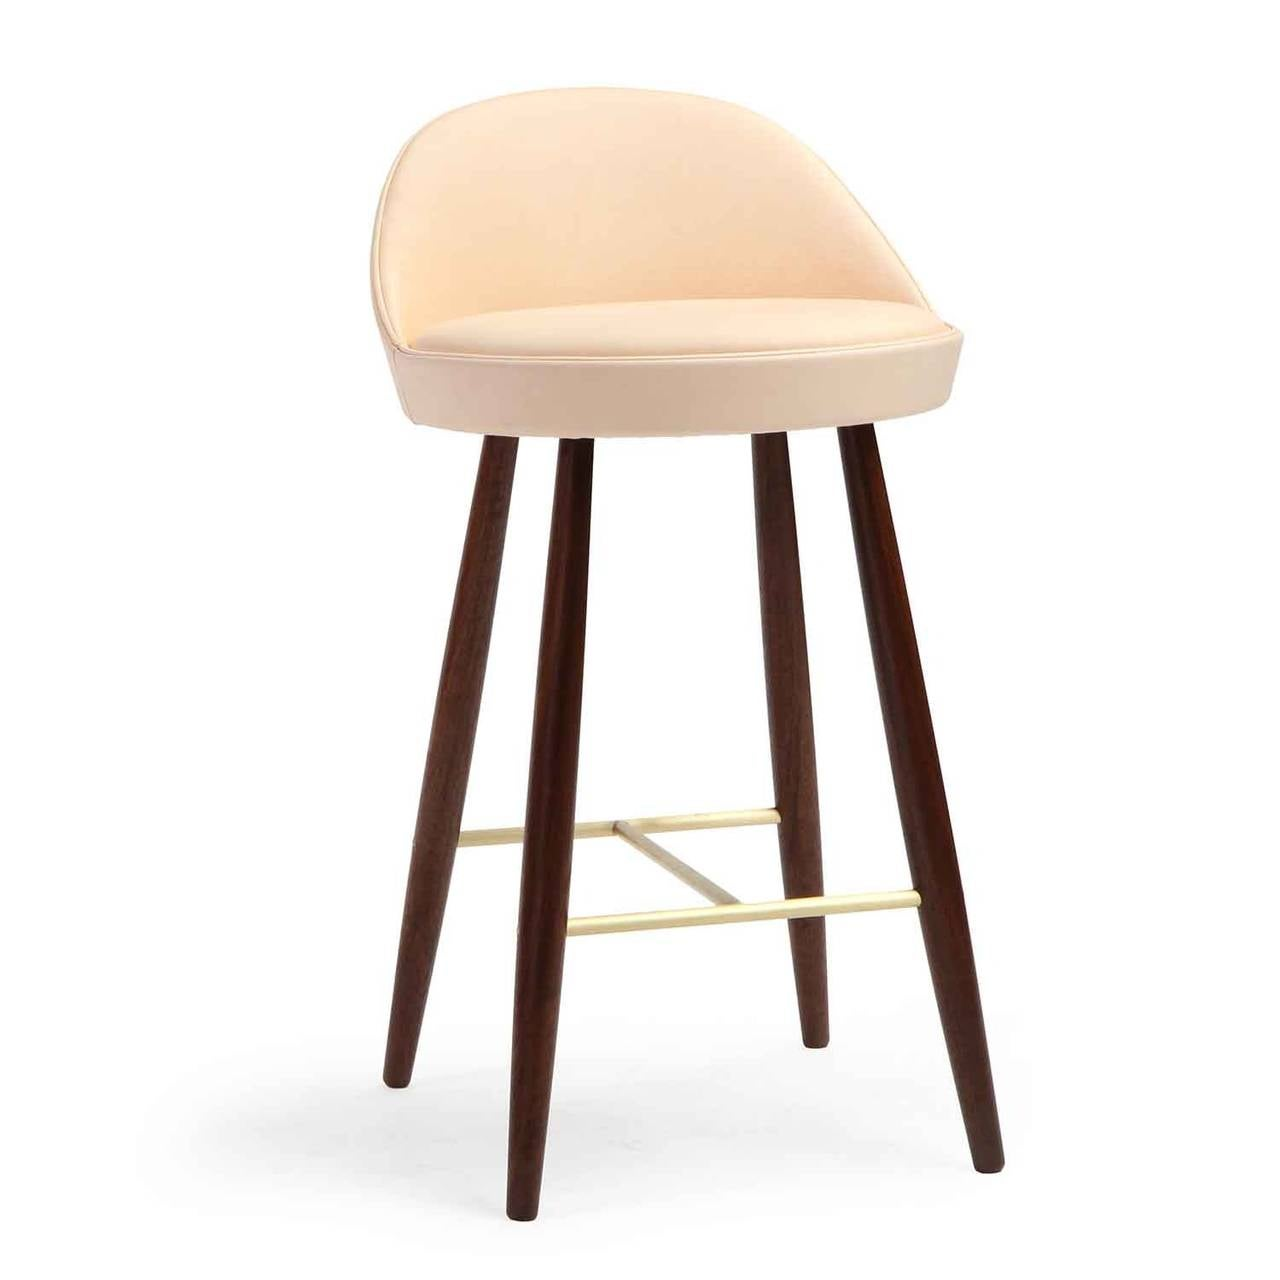 Superb Low Backed Bar Stools For Sale At 1stdibs